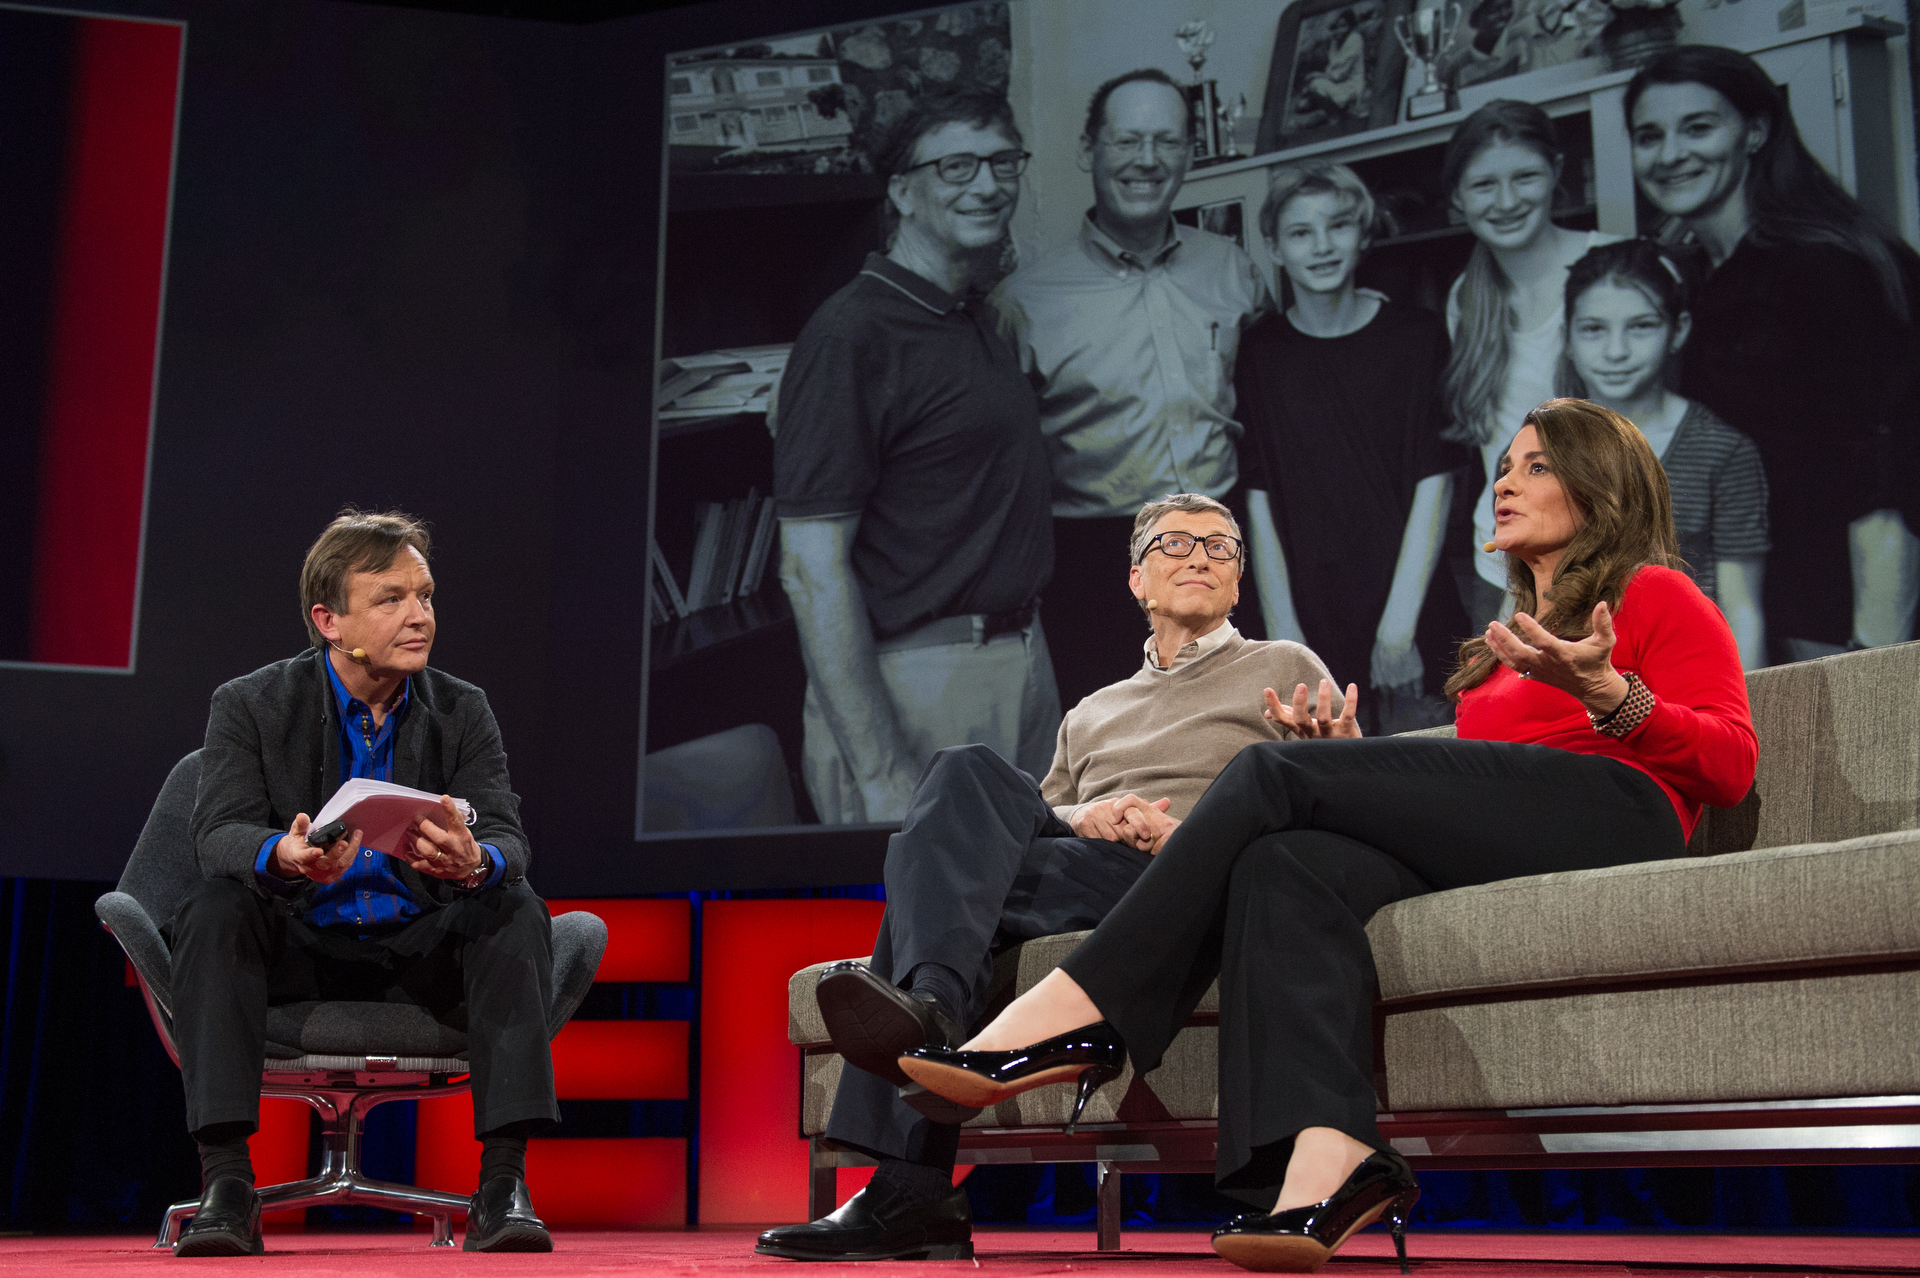 Bill Gates (middle) dedicated his career to building the world's largest PC software company. Together with his wife, Melinda Gates (right), they are now using their wealth to create a philanthropic impact in this world and have pledged to give at least 95% of their wealth away in their lifetime.   Image source:   Why giving away our wealth has been the most satisfying thing we've done  (  TED Blog    )